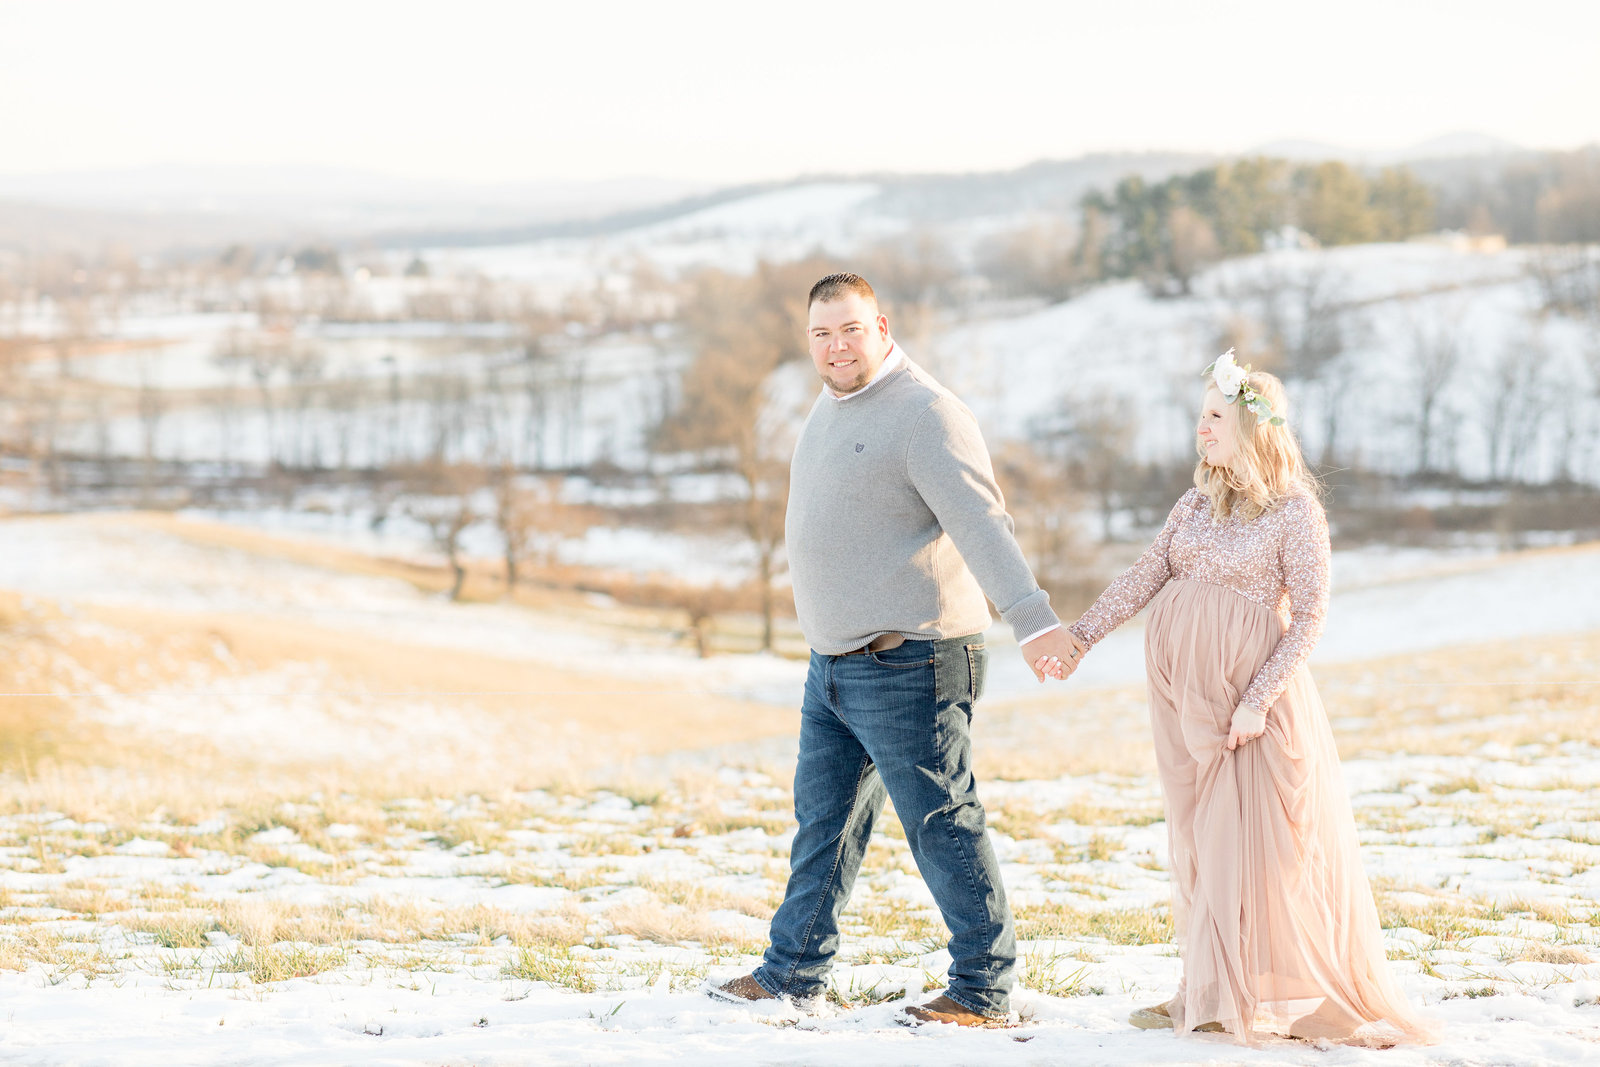 jess-dereck-snowy-winter-maternity-photo-session-001